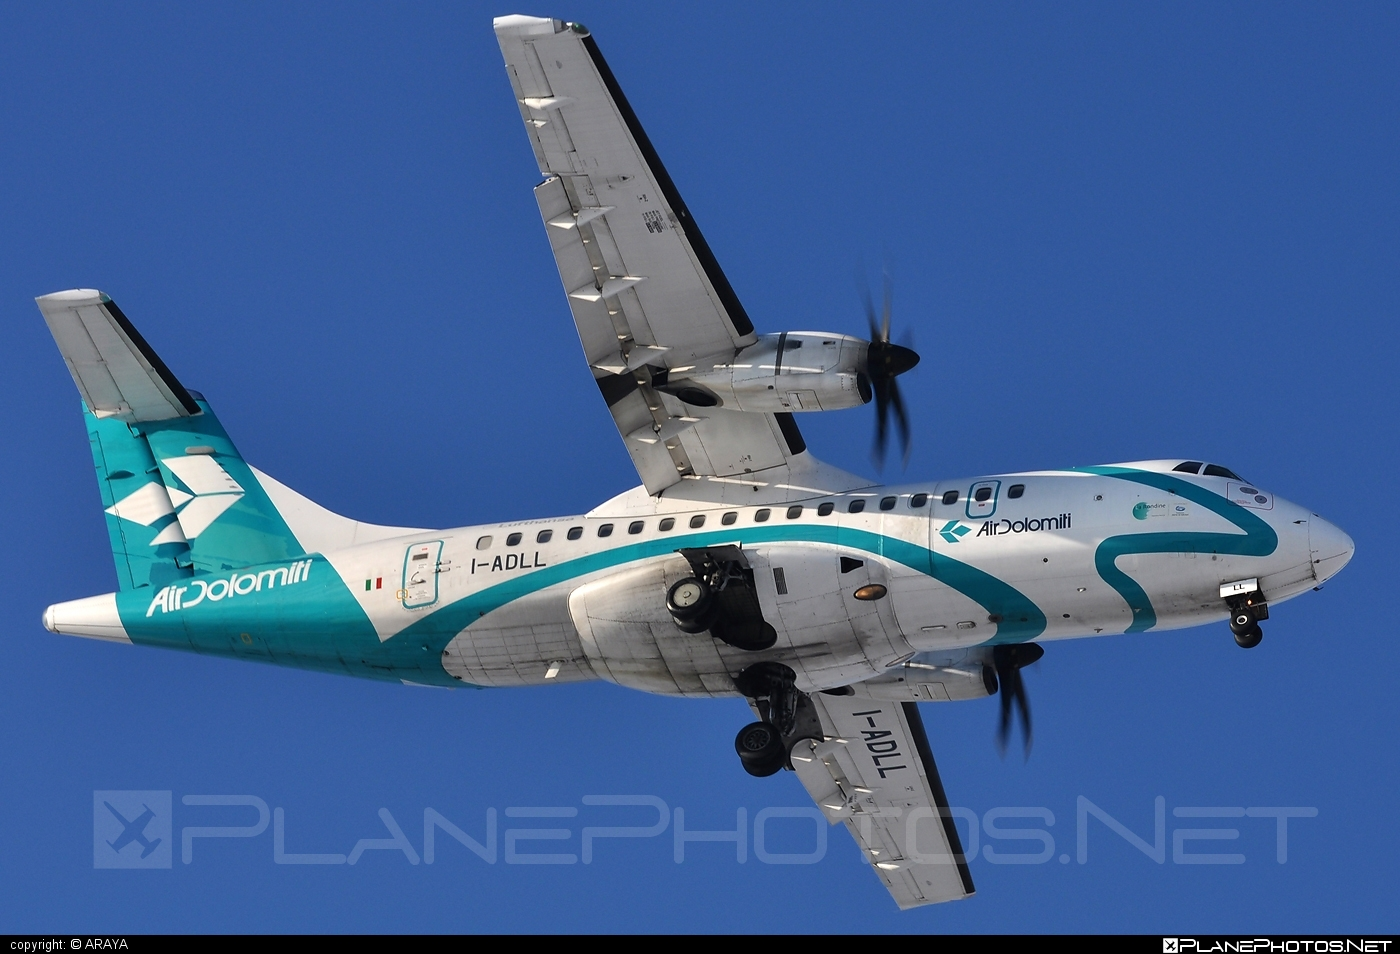 ATR 42-500 - I-ADLL operated by Air Dolomiti #airdolomiti #atr #atr42 #atr42500